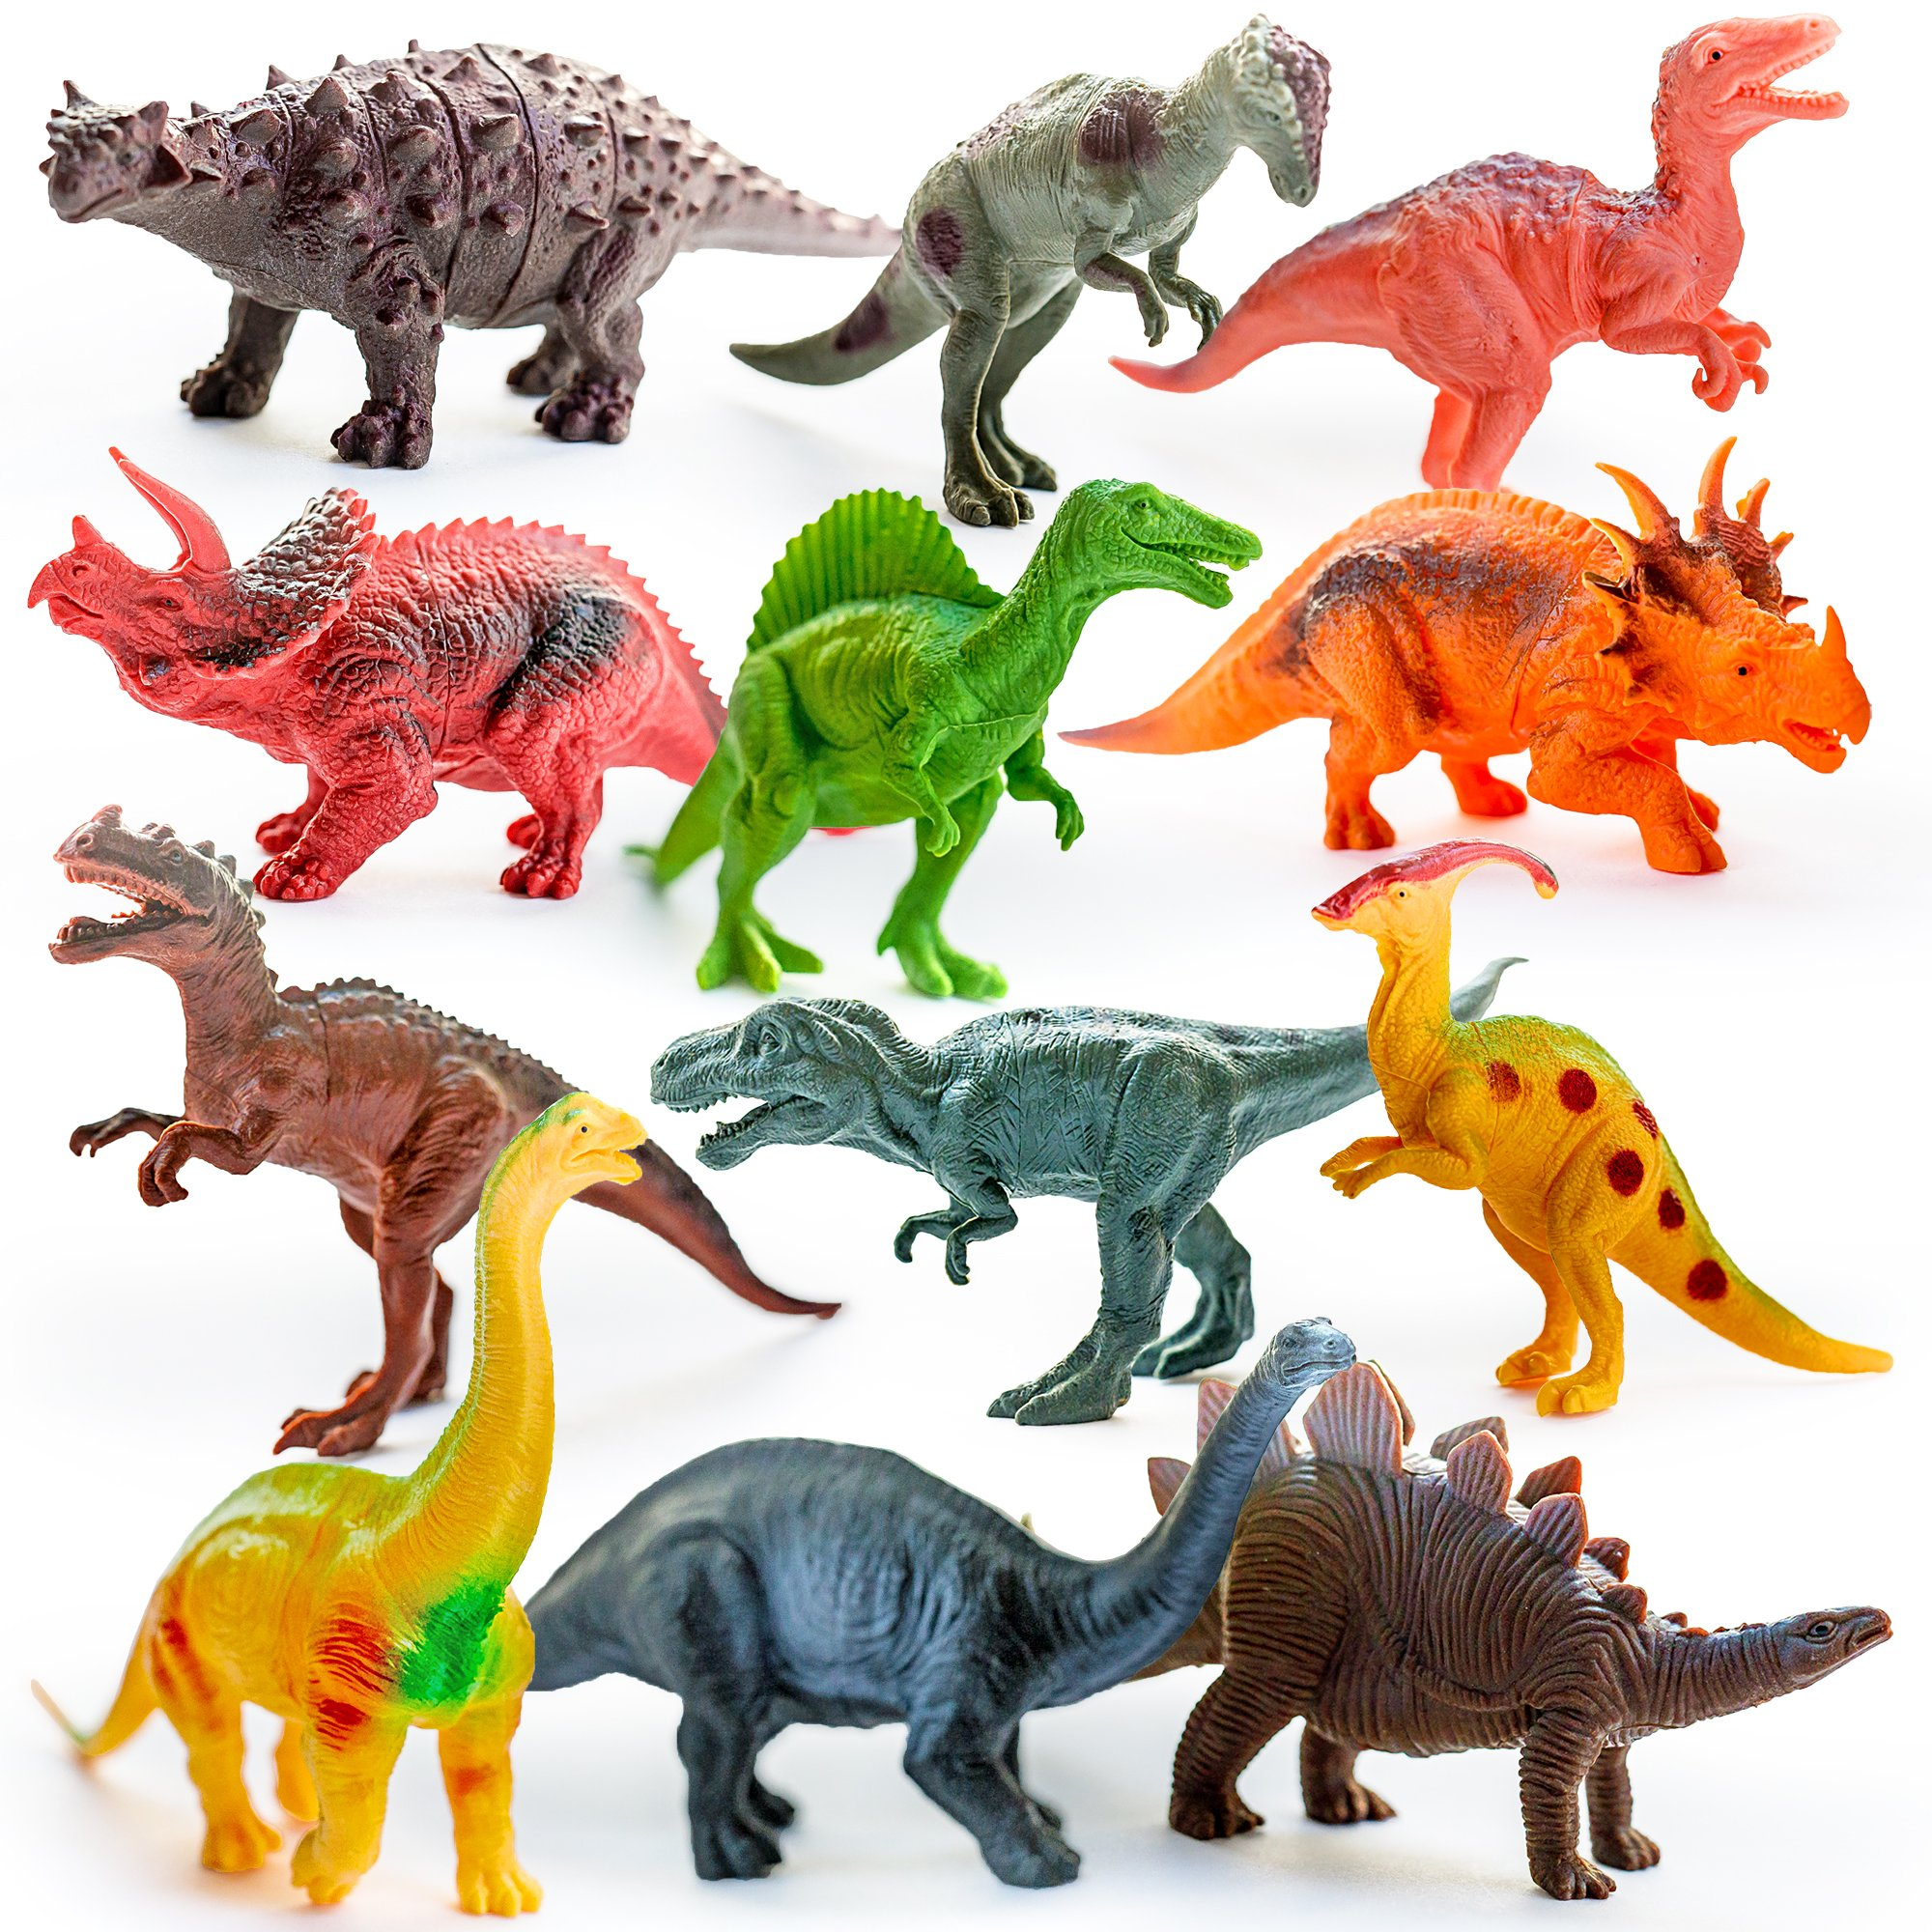 EDUCATIONAL Dinosaurs Action Figures For Kids Plastic Toys